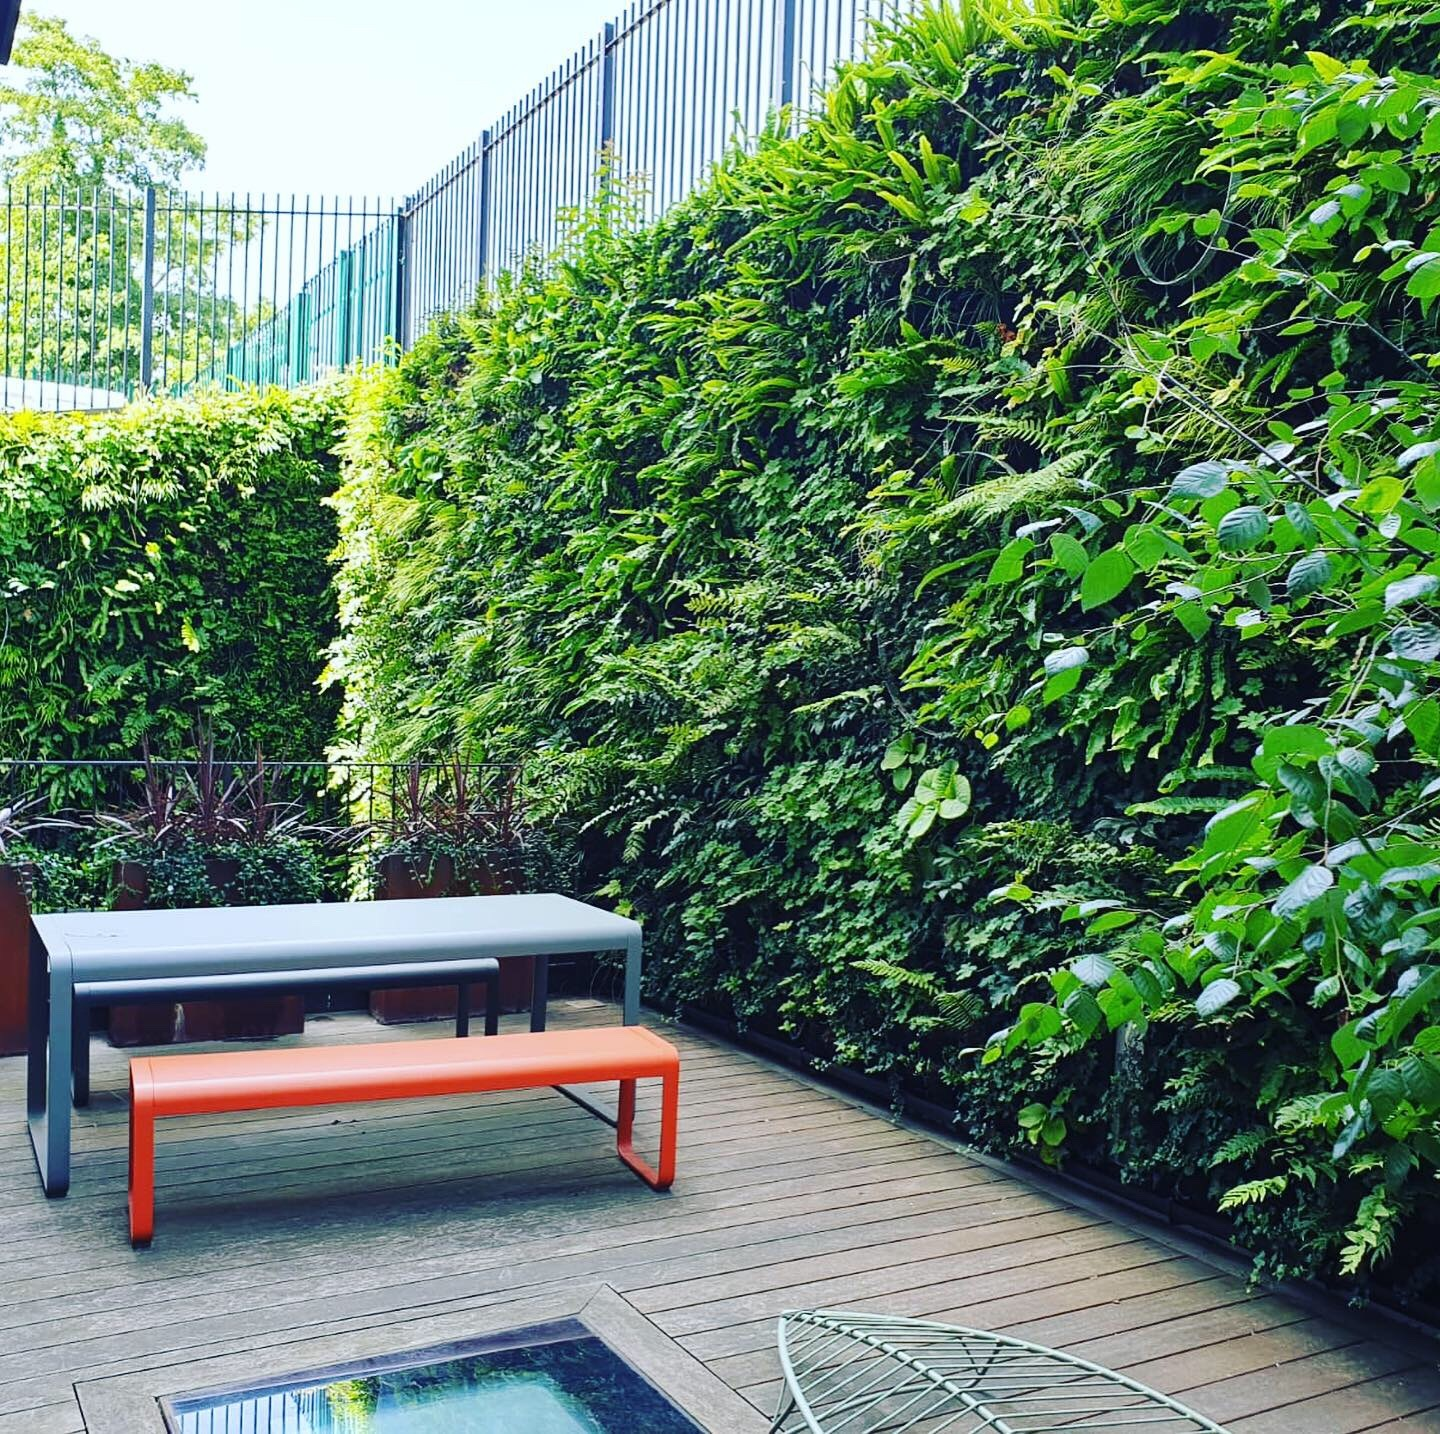 Living wall Green wall benches